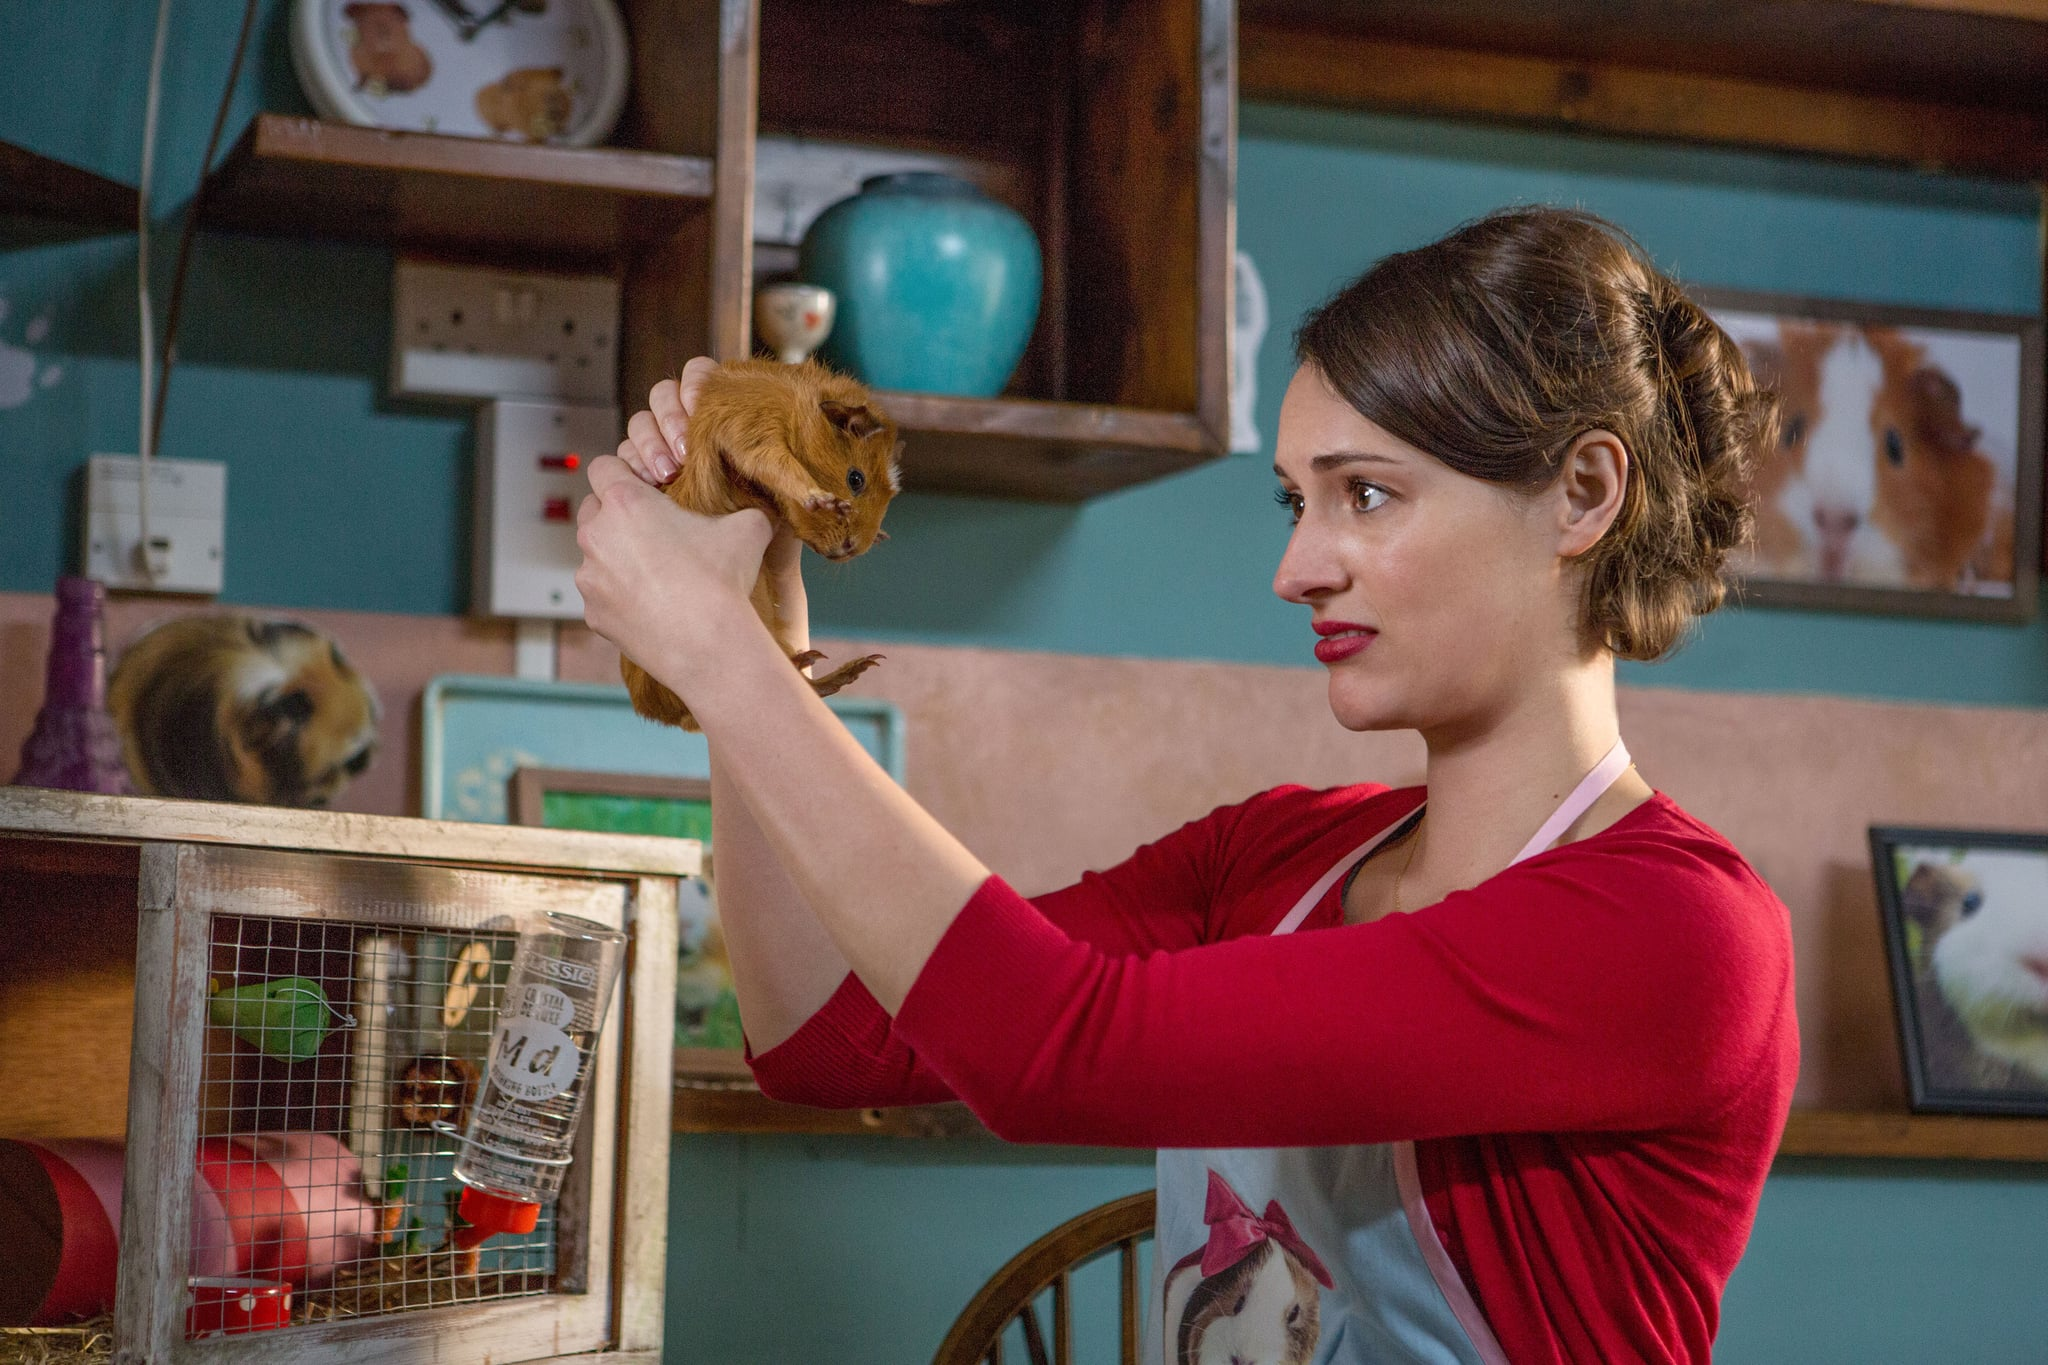 FLEABAG, Phoebe Waller-Bridge, (Season 1, Episode 2, aired September 16, 2016). ph: Luke Varley/Amazon/courtesy Everett Collection